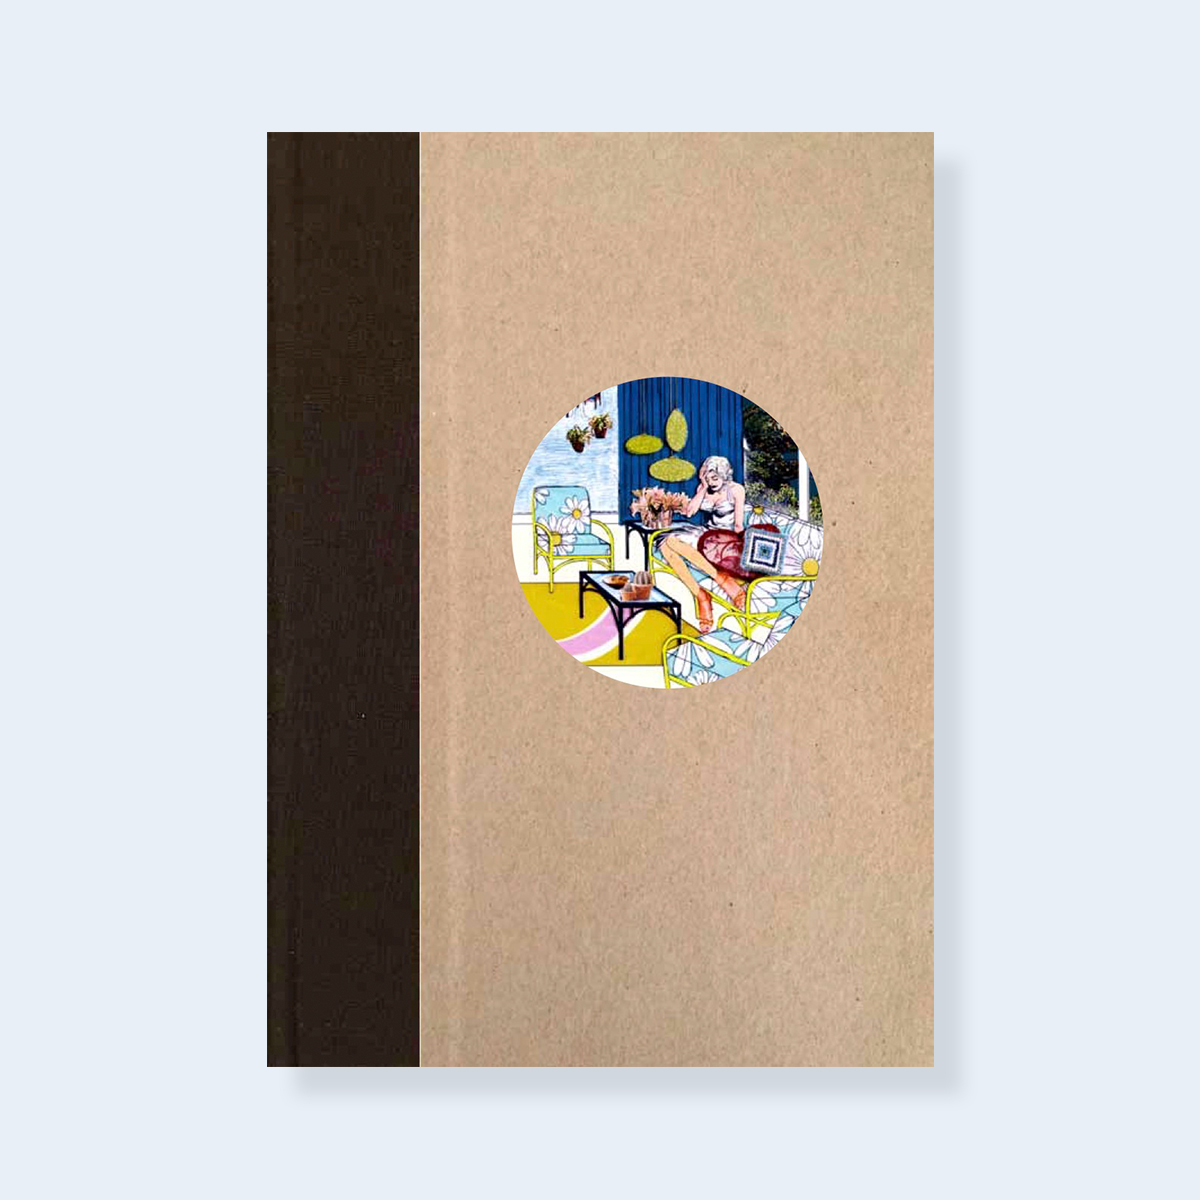 LAURIE SIMMONS | The Instant Decorator | One Picture Book Two #12 |  Order >